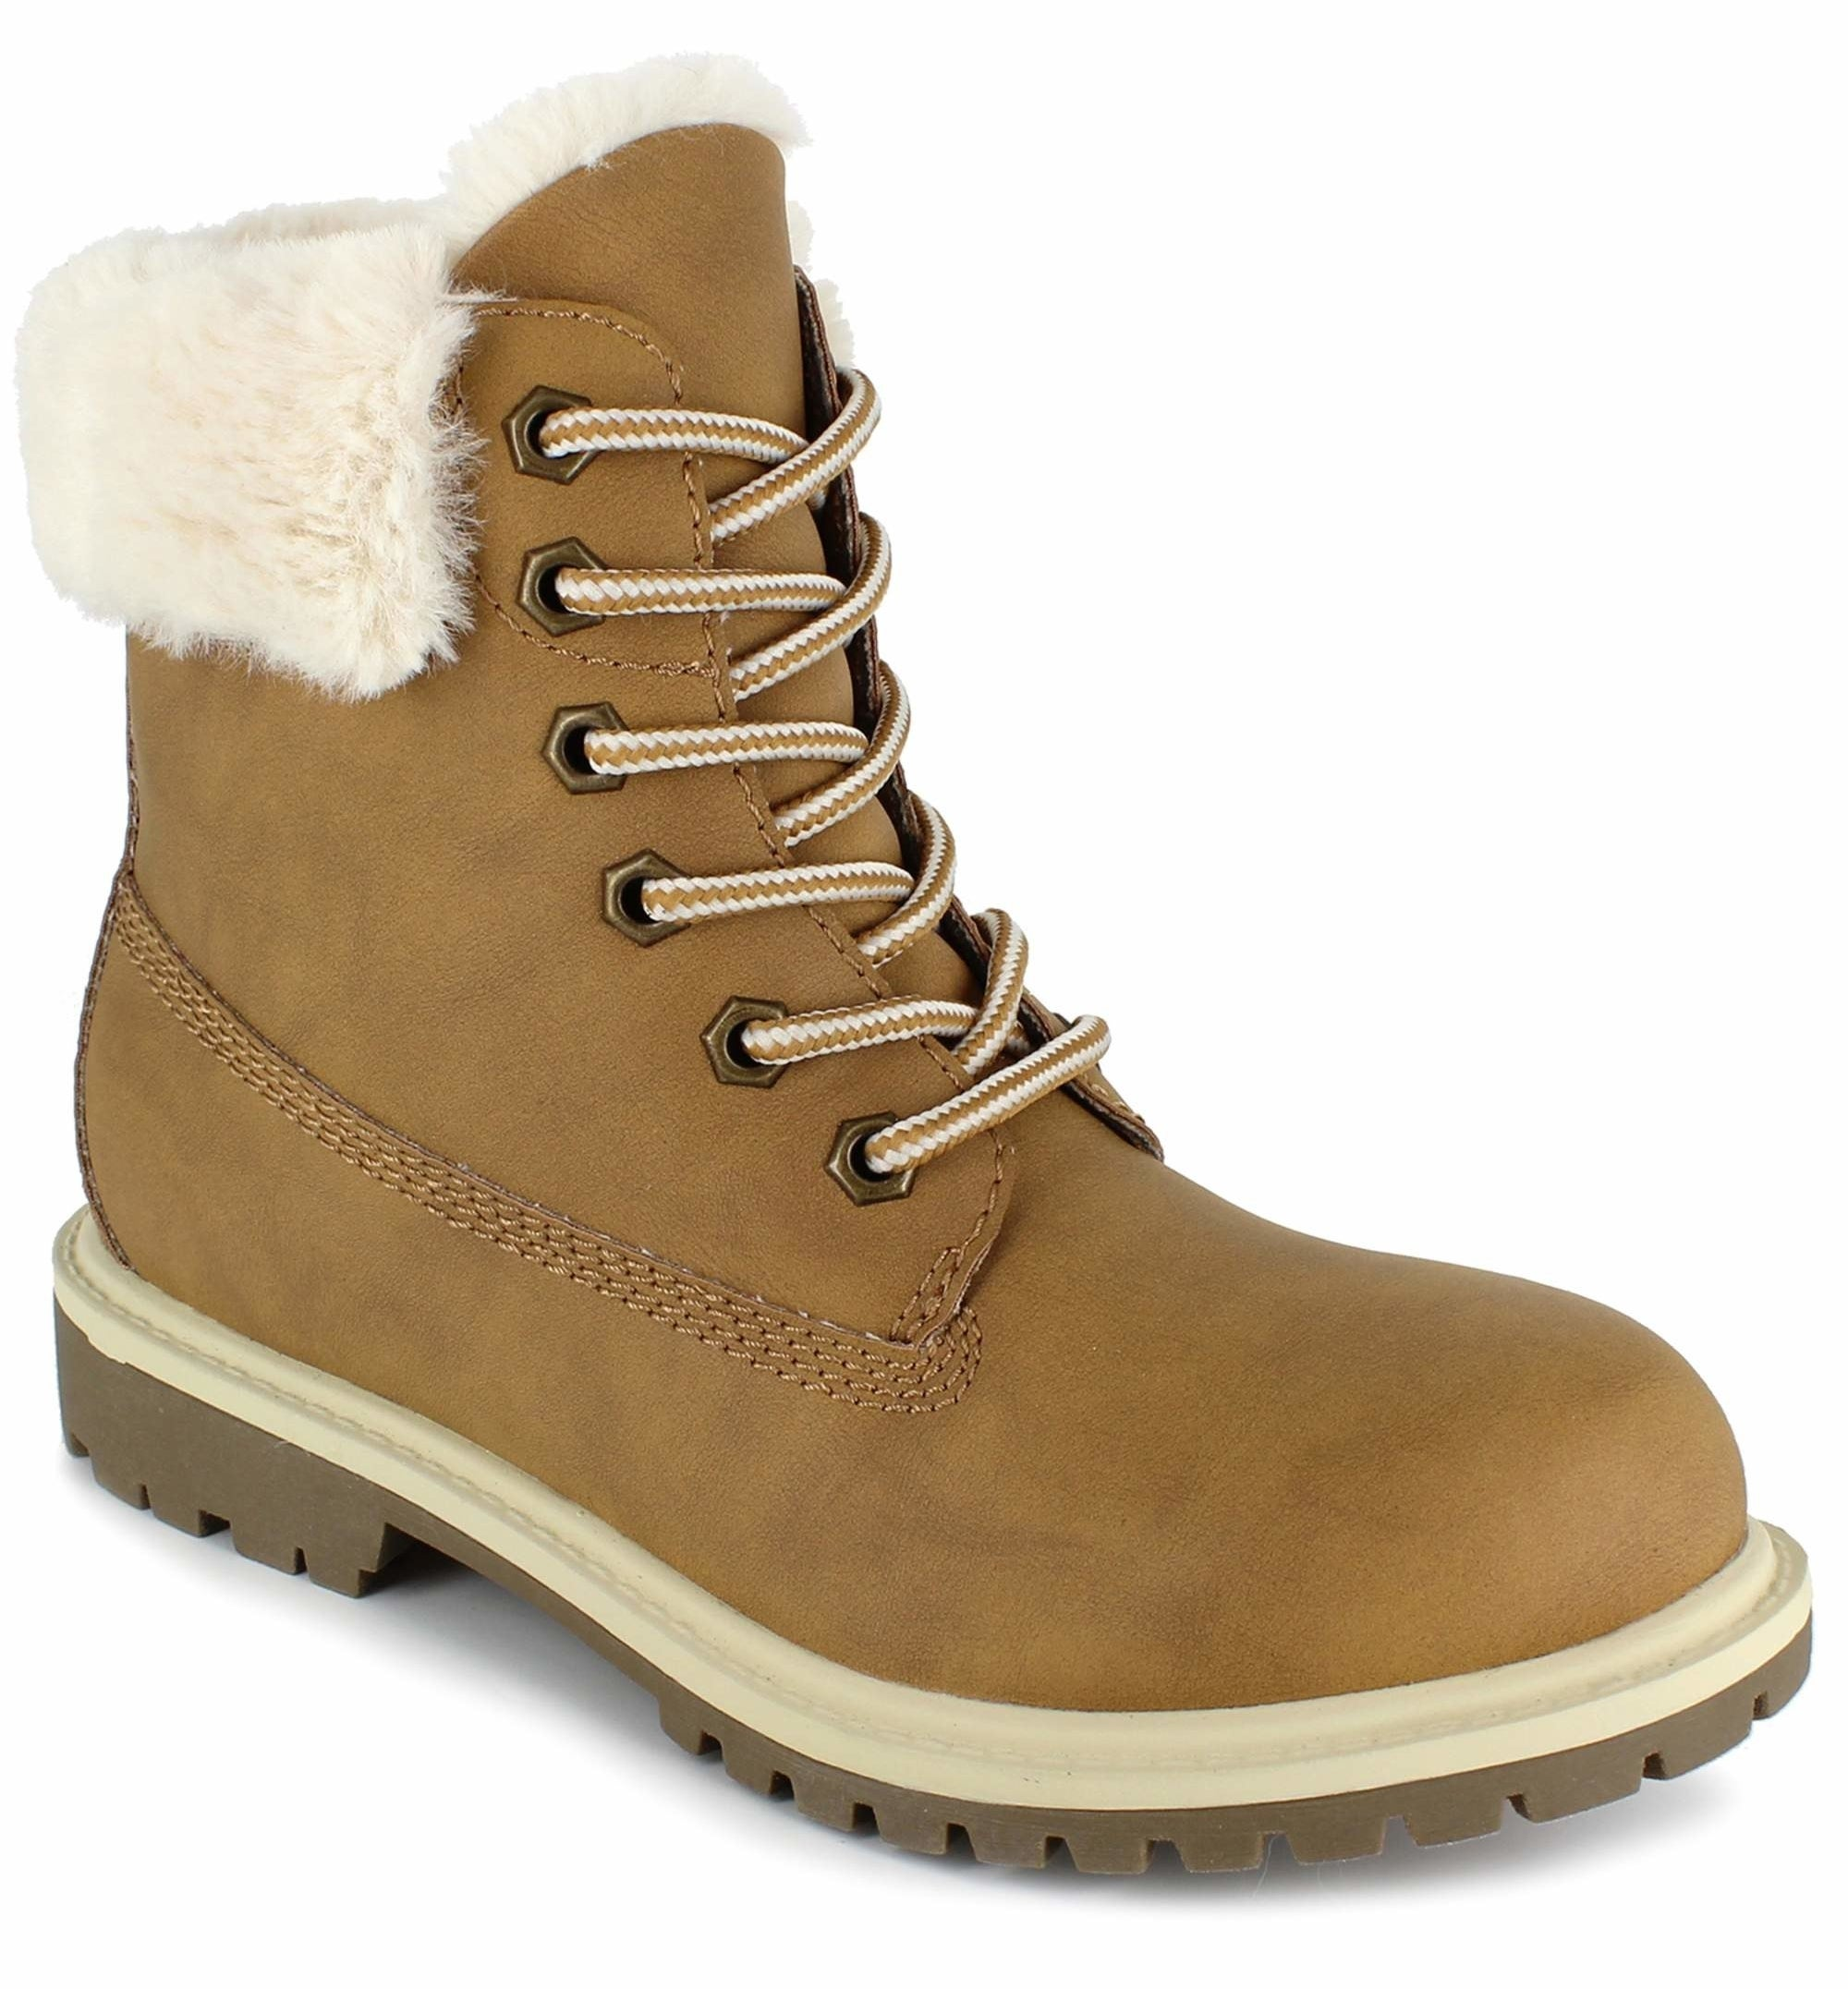 one wheat-colored faux fur trimmed lace-up boots